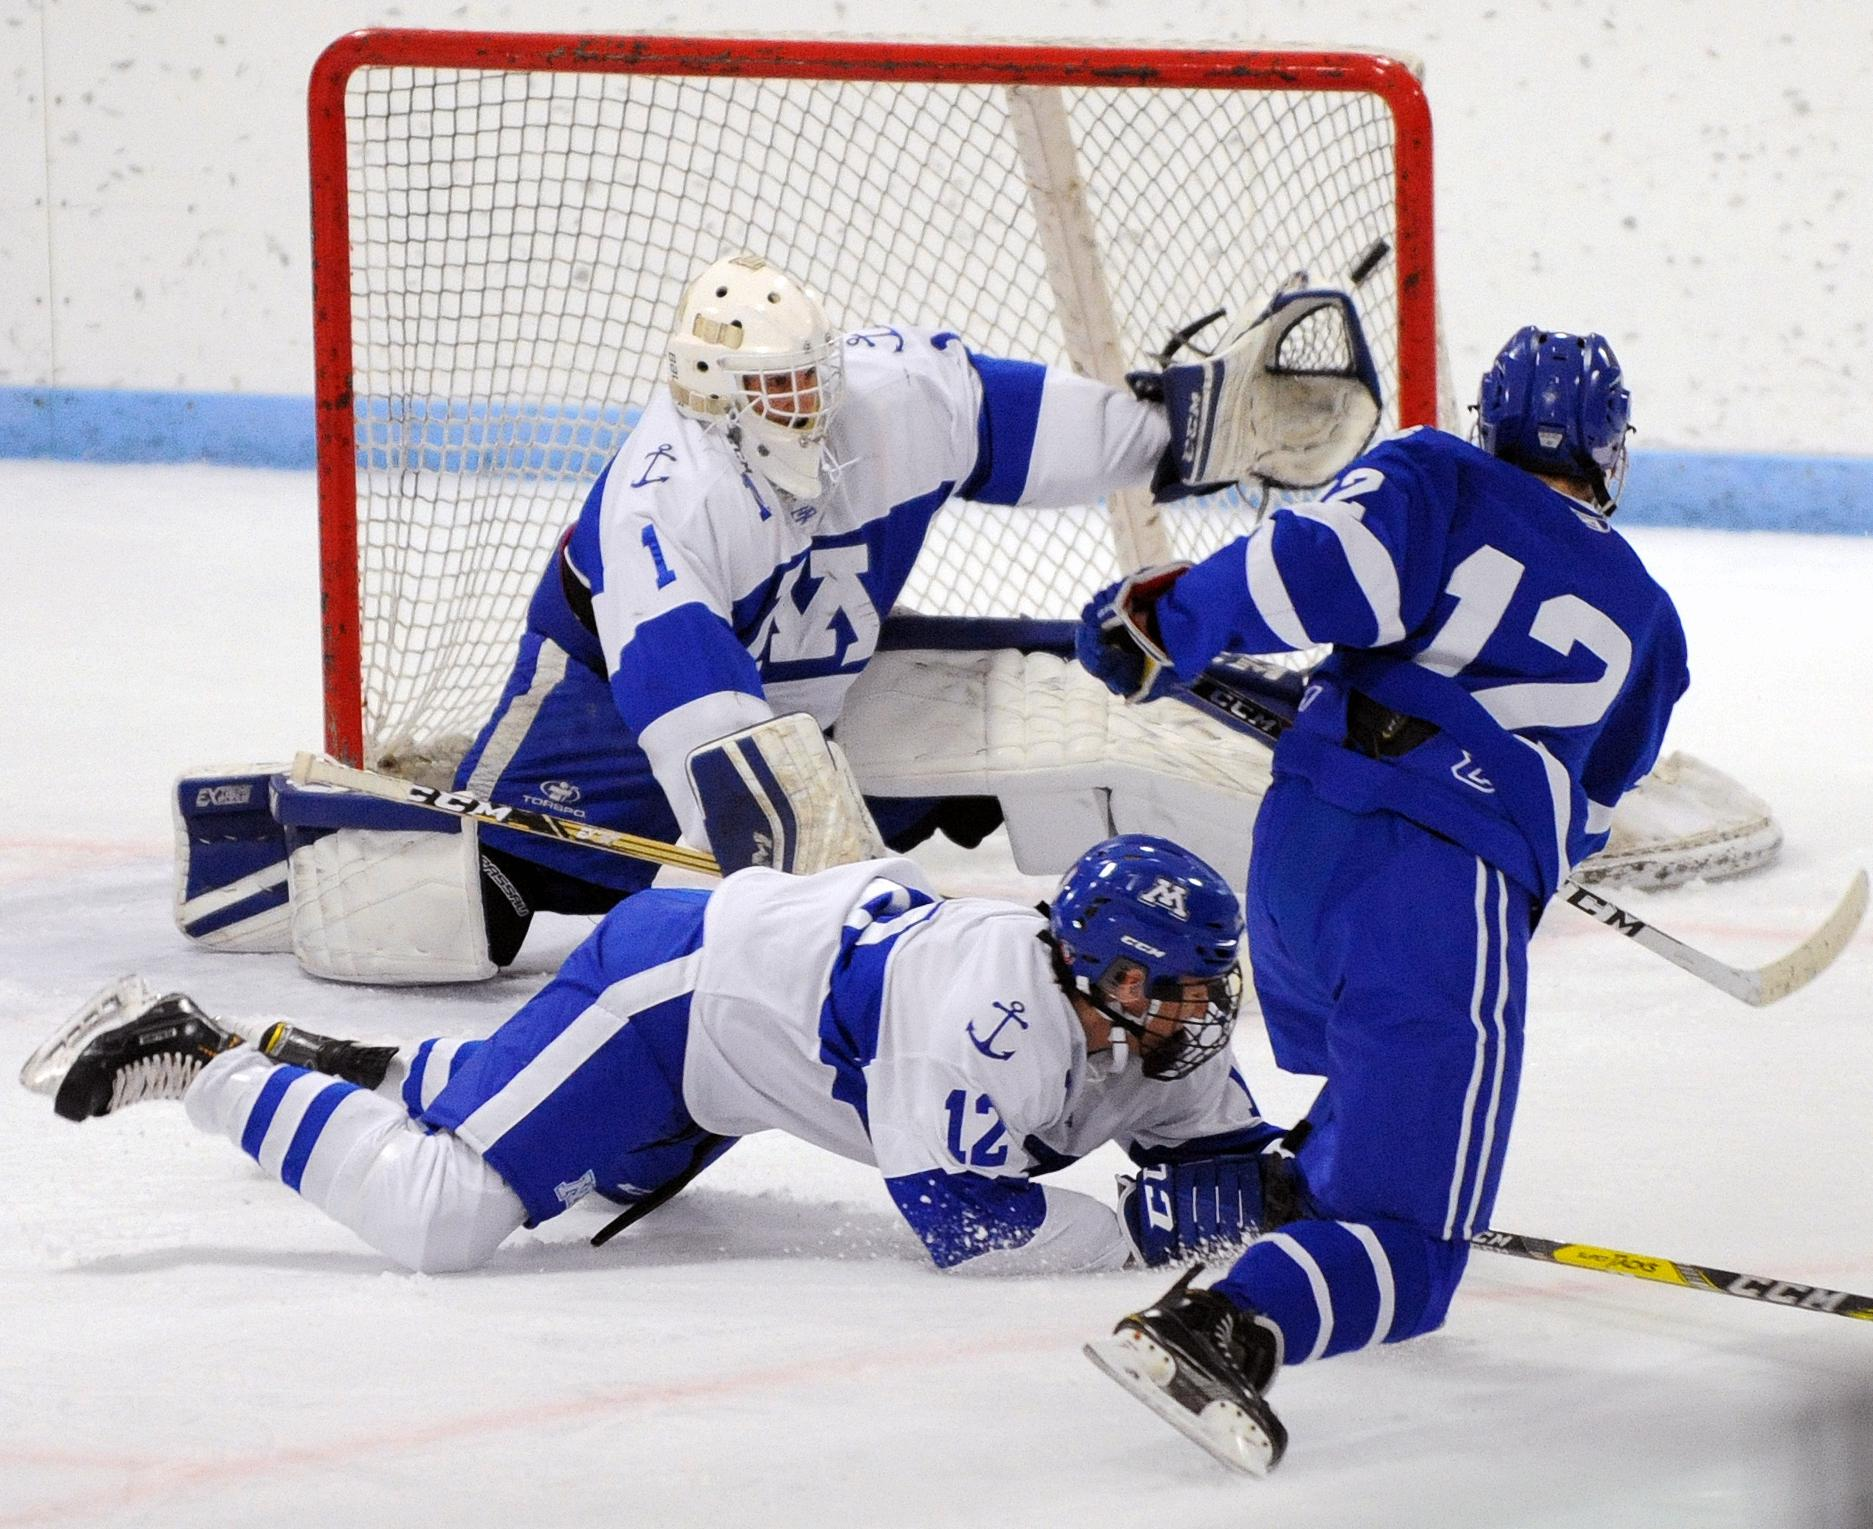 Ryan O'Neill scores a first-period goal for St. Thomas Academy. Photo by Loren Nelson, SportsEngine